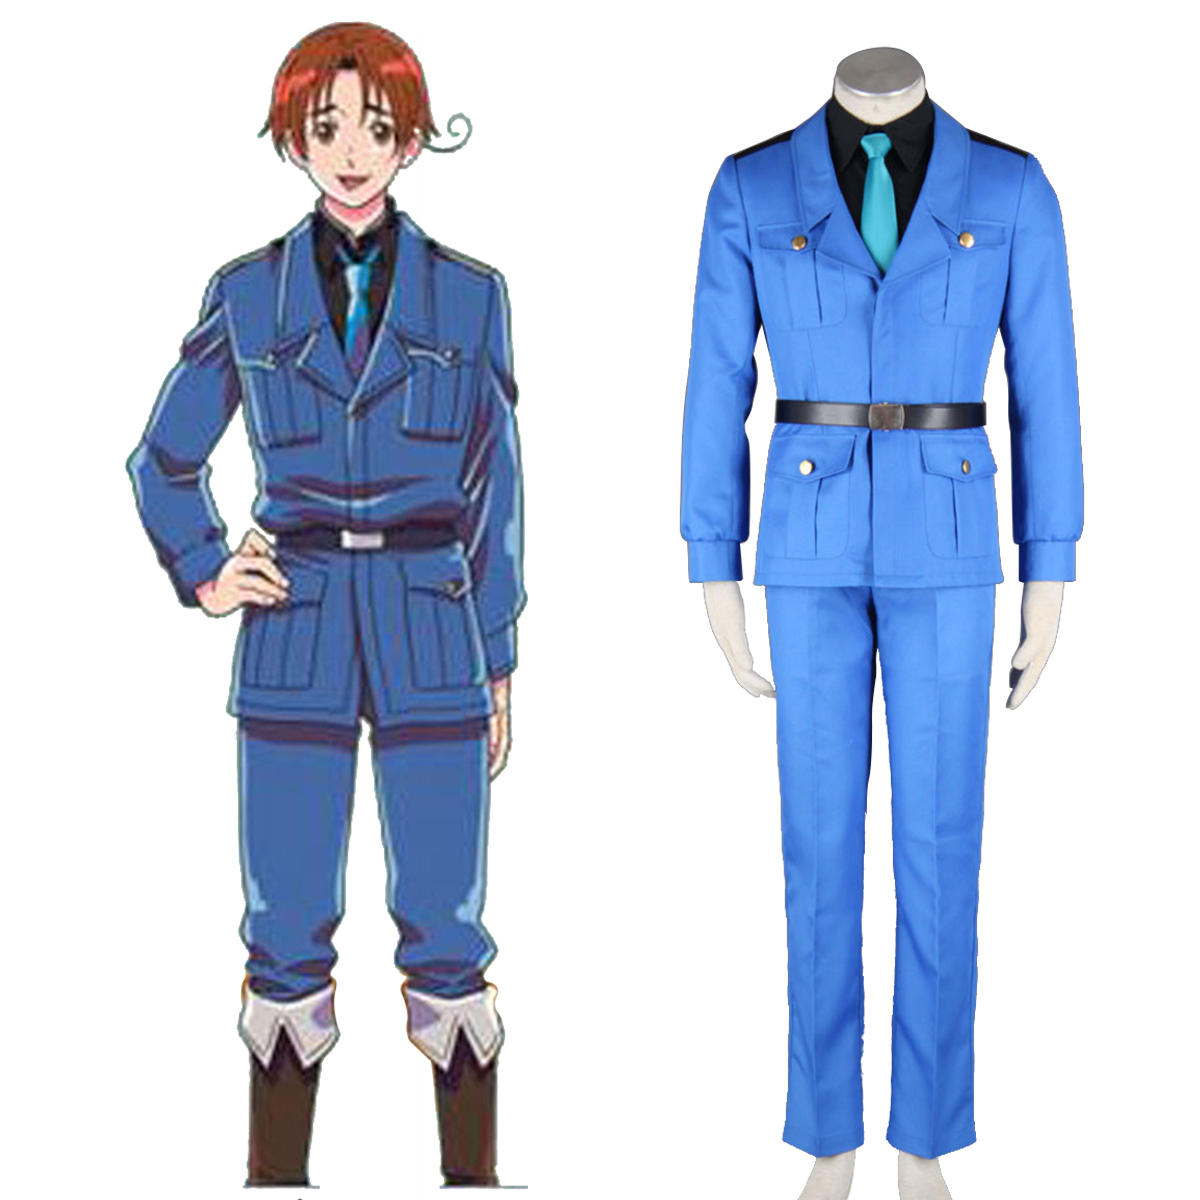 Axis Powers Hetalia APH North Italy Feliciano Vargas 3 Cosplay Costumes New Zealand Online Store